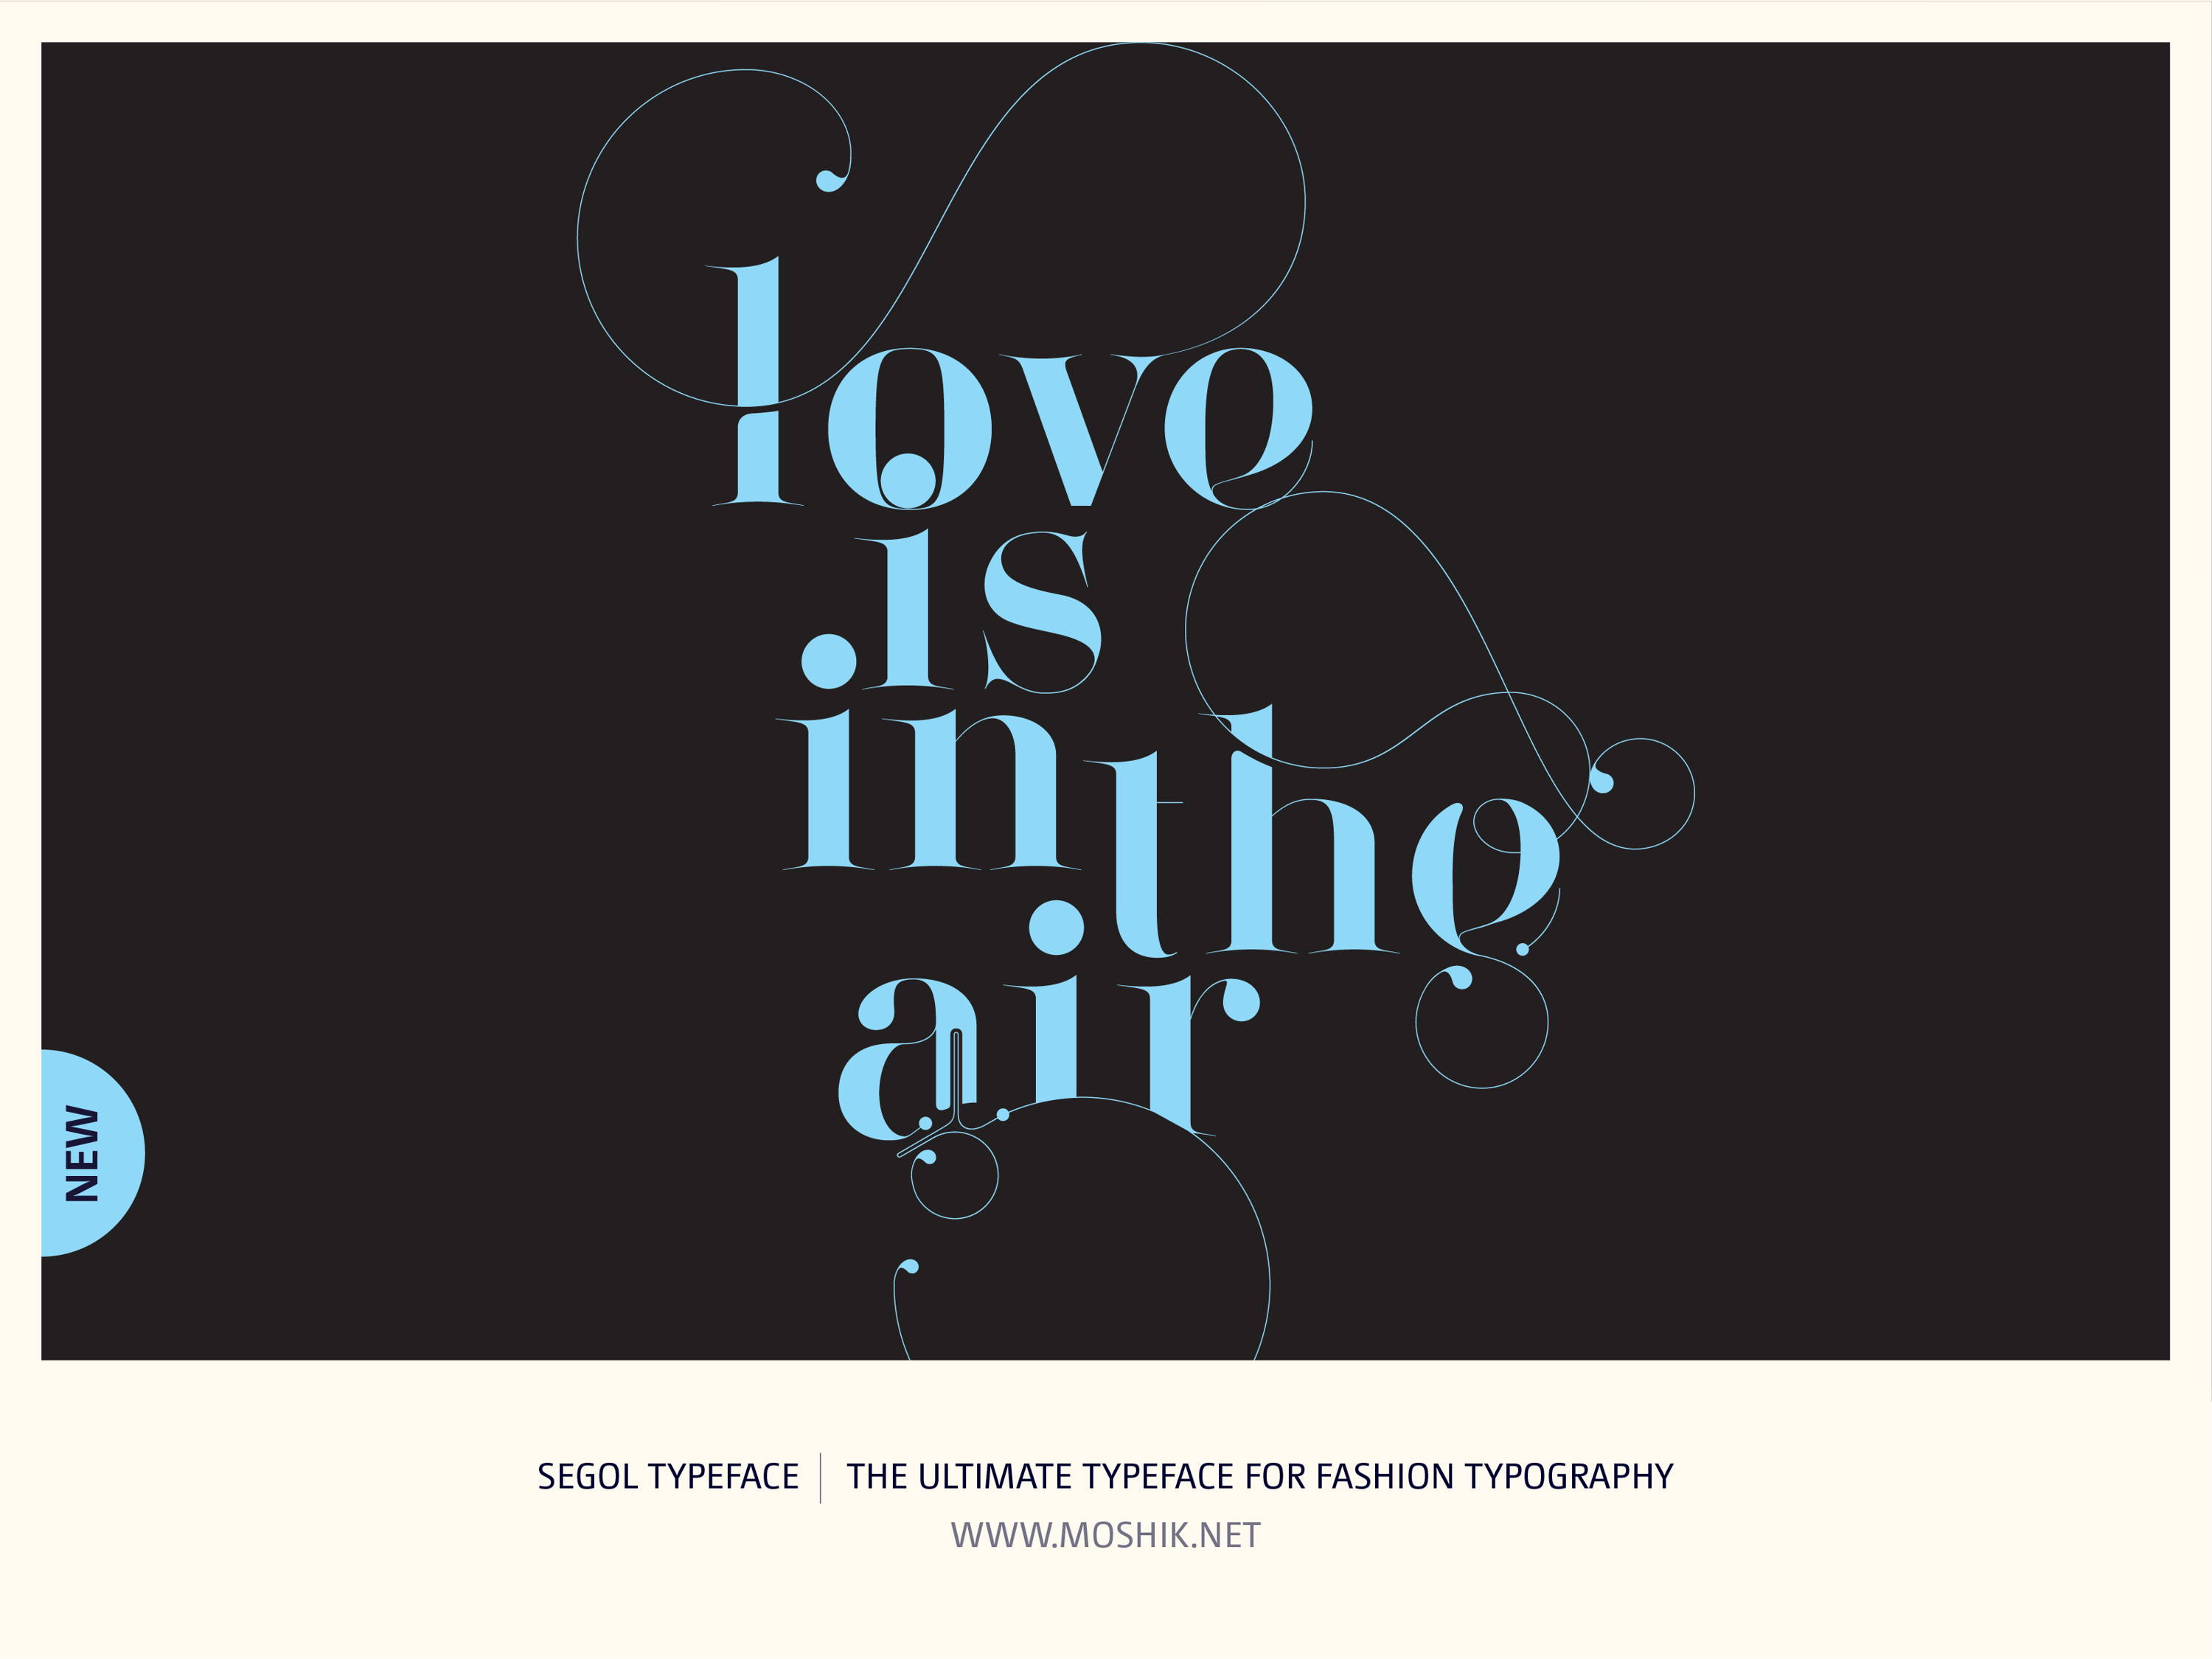 Segol Typeface, Love is in the air, Moshik Nadav, Fashion fonts, Fashion Typography, Vogue fonts, Fashion logos, Sexy logos, sexy fonts, custom fonts, custom fashion logo, Best fonts 2021, Must have fonts 2021, valentines, typography, poster